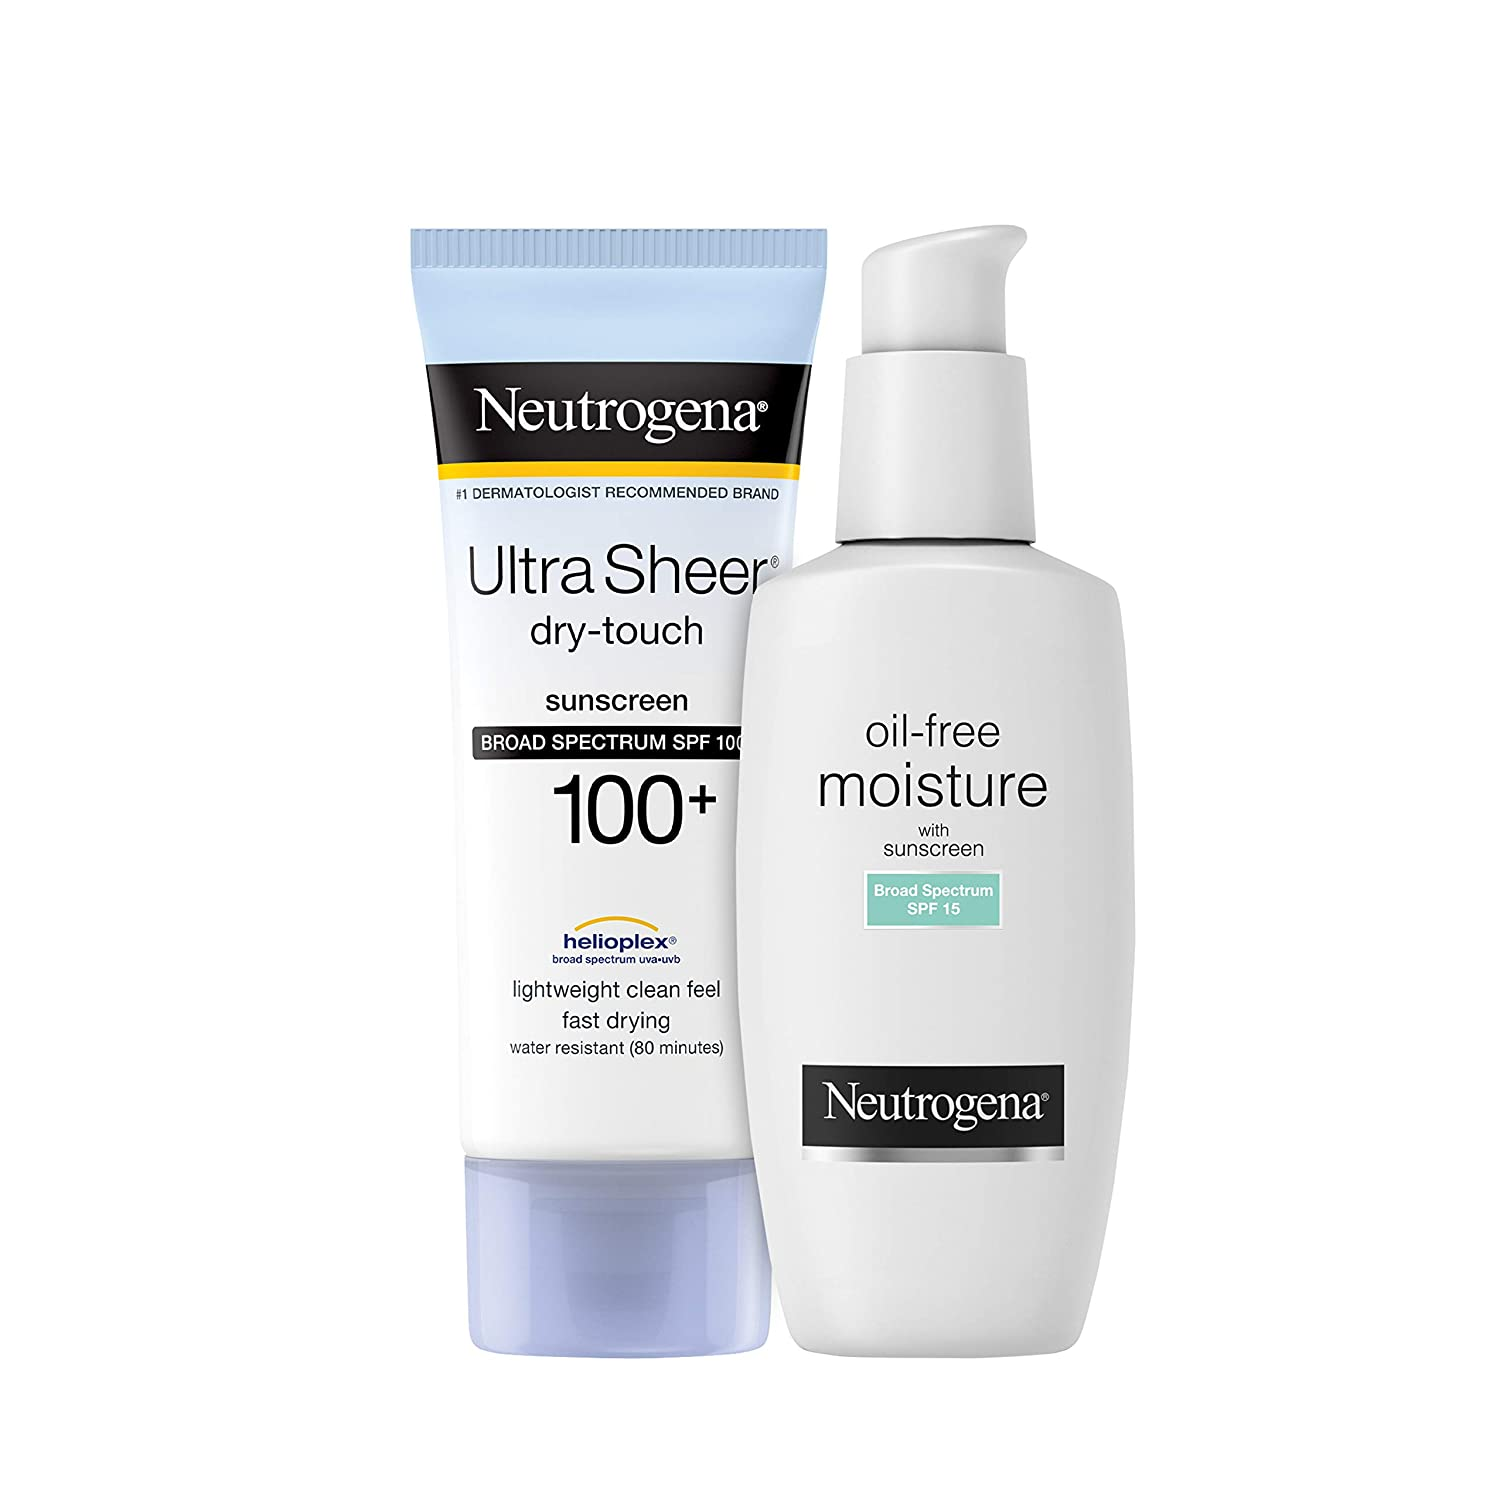 Neutrogena Ultra Sheer Dry-Touch Water Resistant and Non-Greasy Sunscreen Lotion, 100+, 3 fl. Oz With a Oil-Free Daily Long Lasting Facial Moisturizer & Neck Cream, 4 fl. Oz